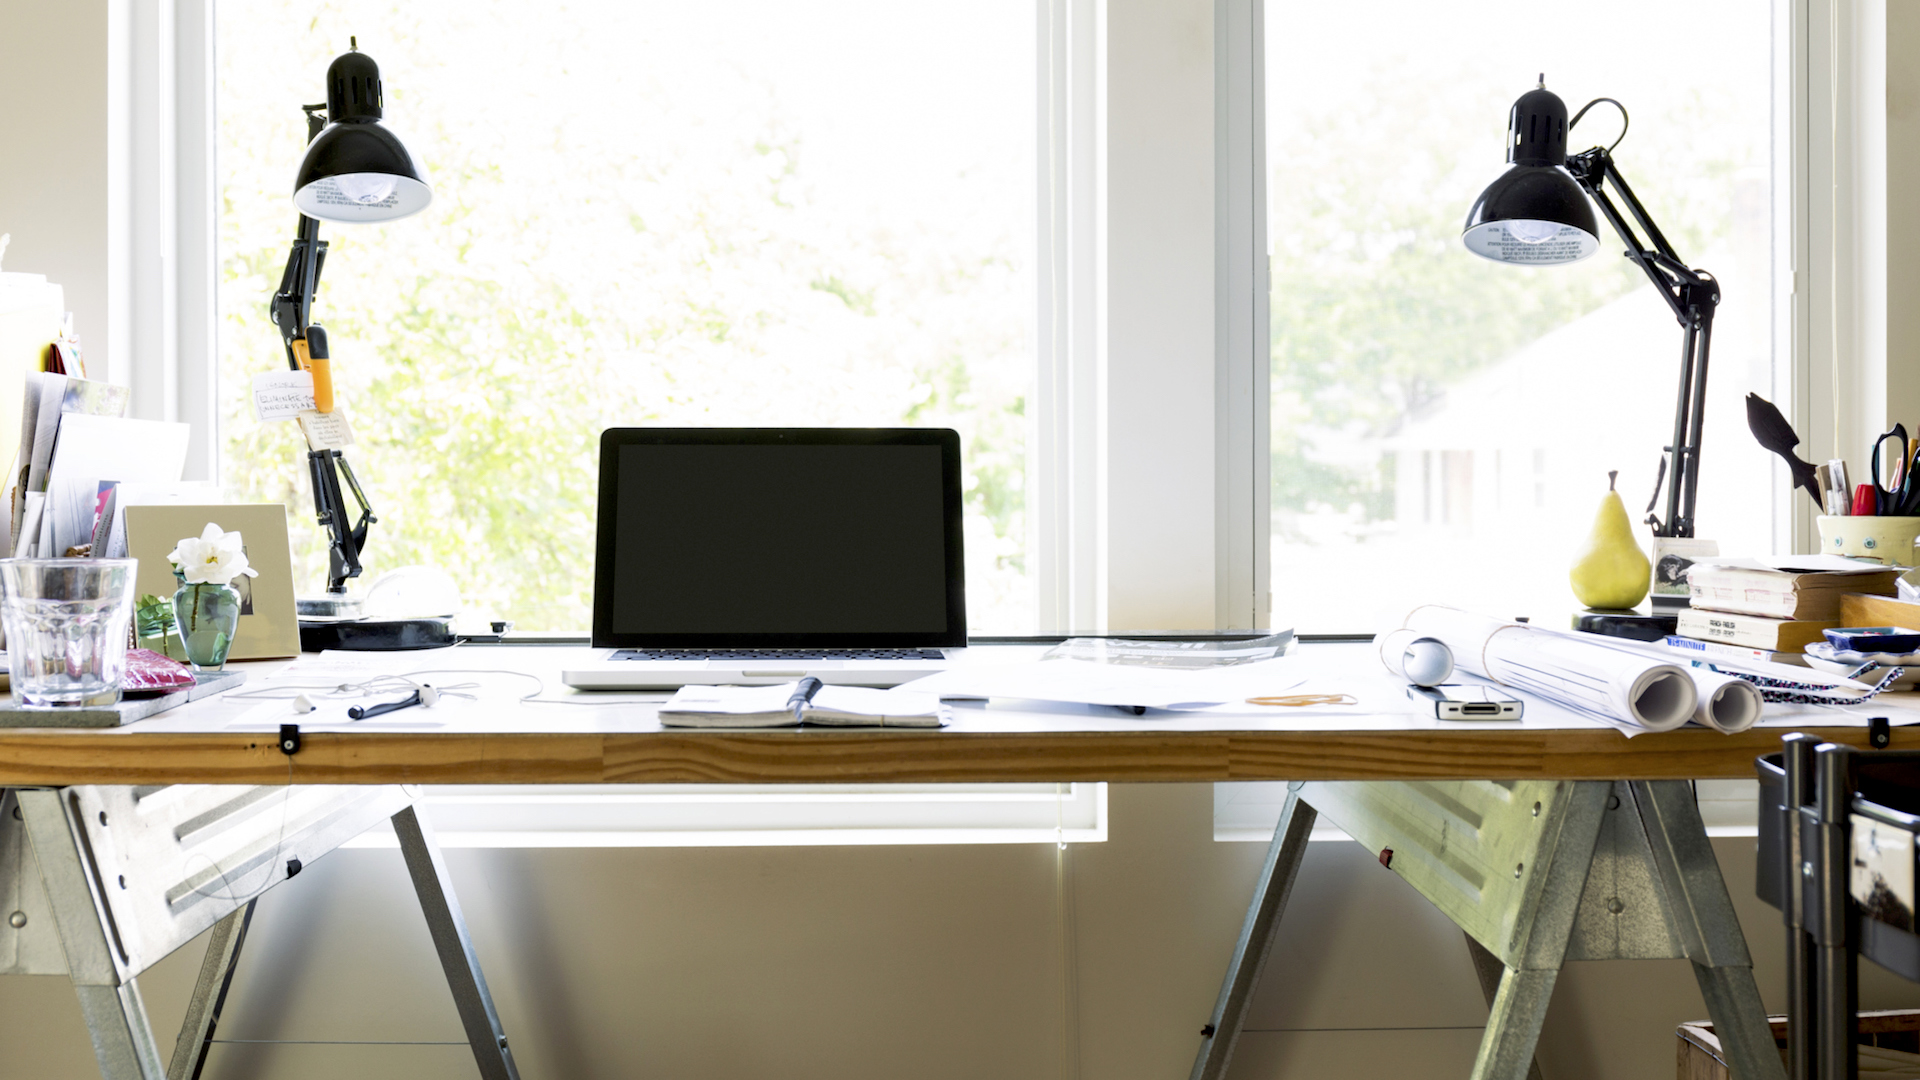 19 Diy Desk Ideas To Inspire A Home Office Makeover Sheknows